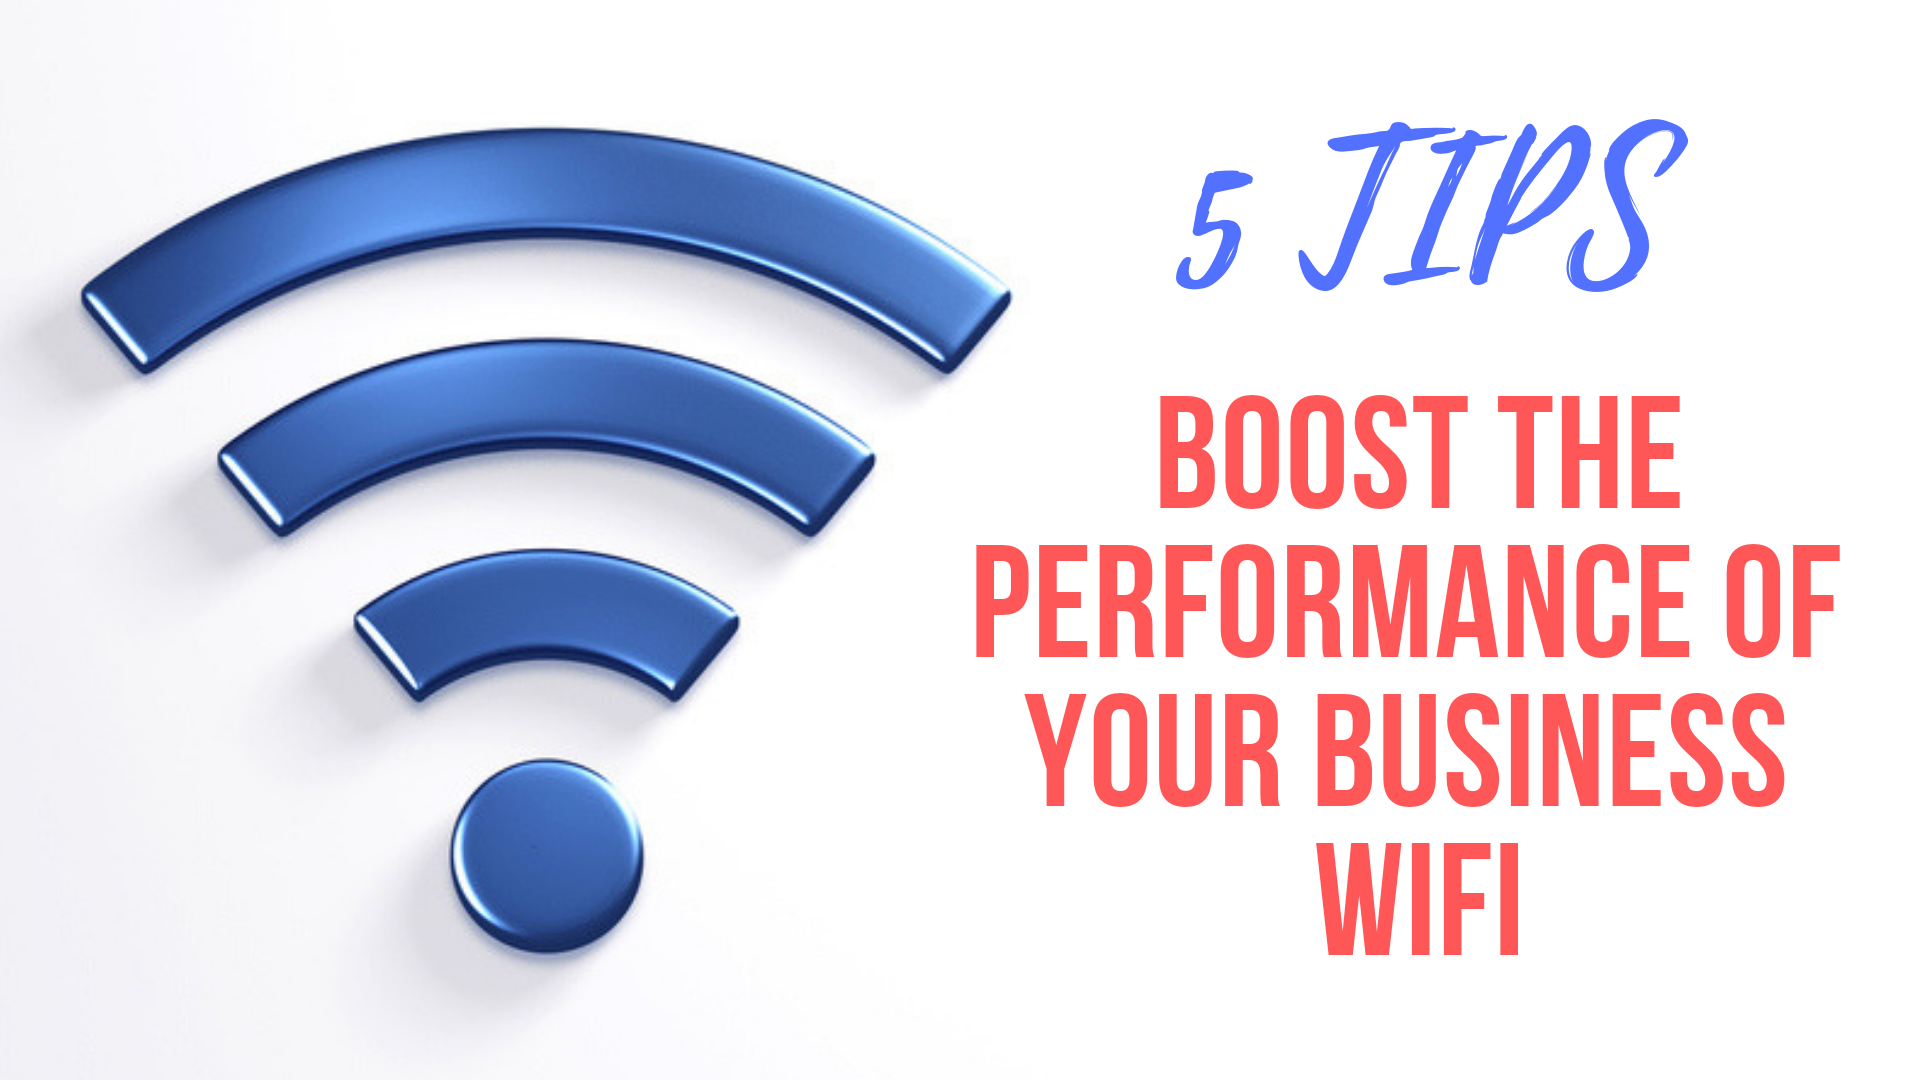 Boost The Performance Of Your Business WiFi